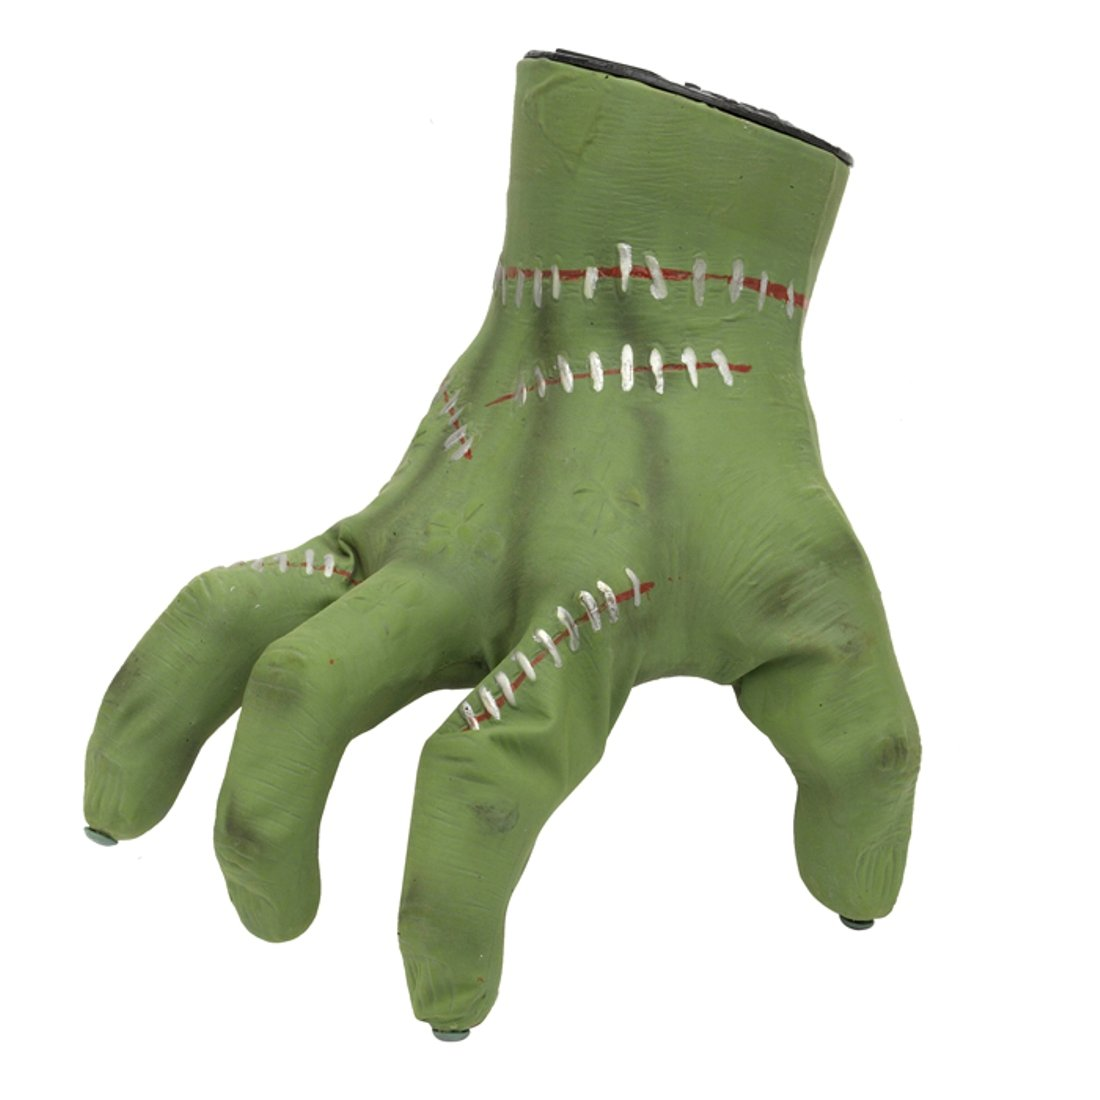 Retro The Thing Crawling Hand (Helping Hand) Halloween Prop by fun